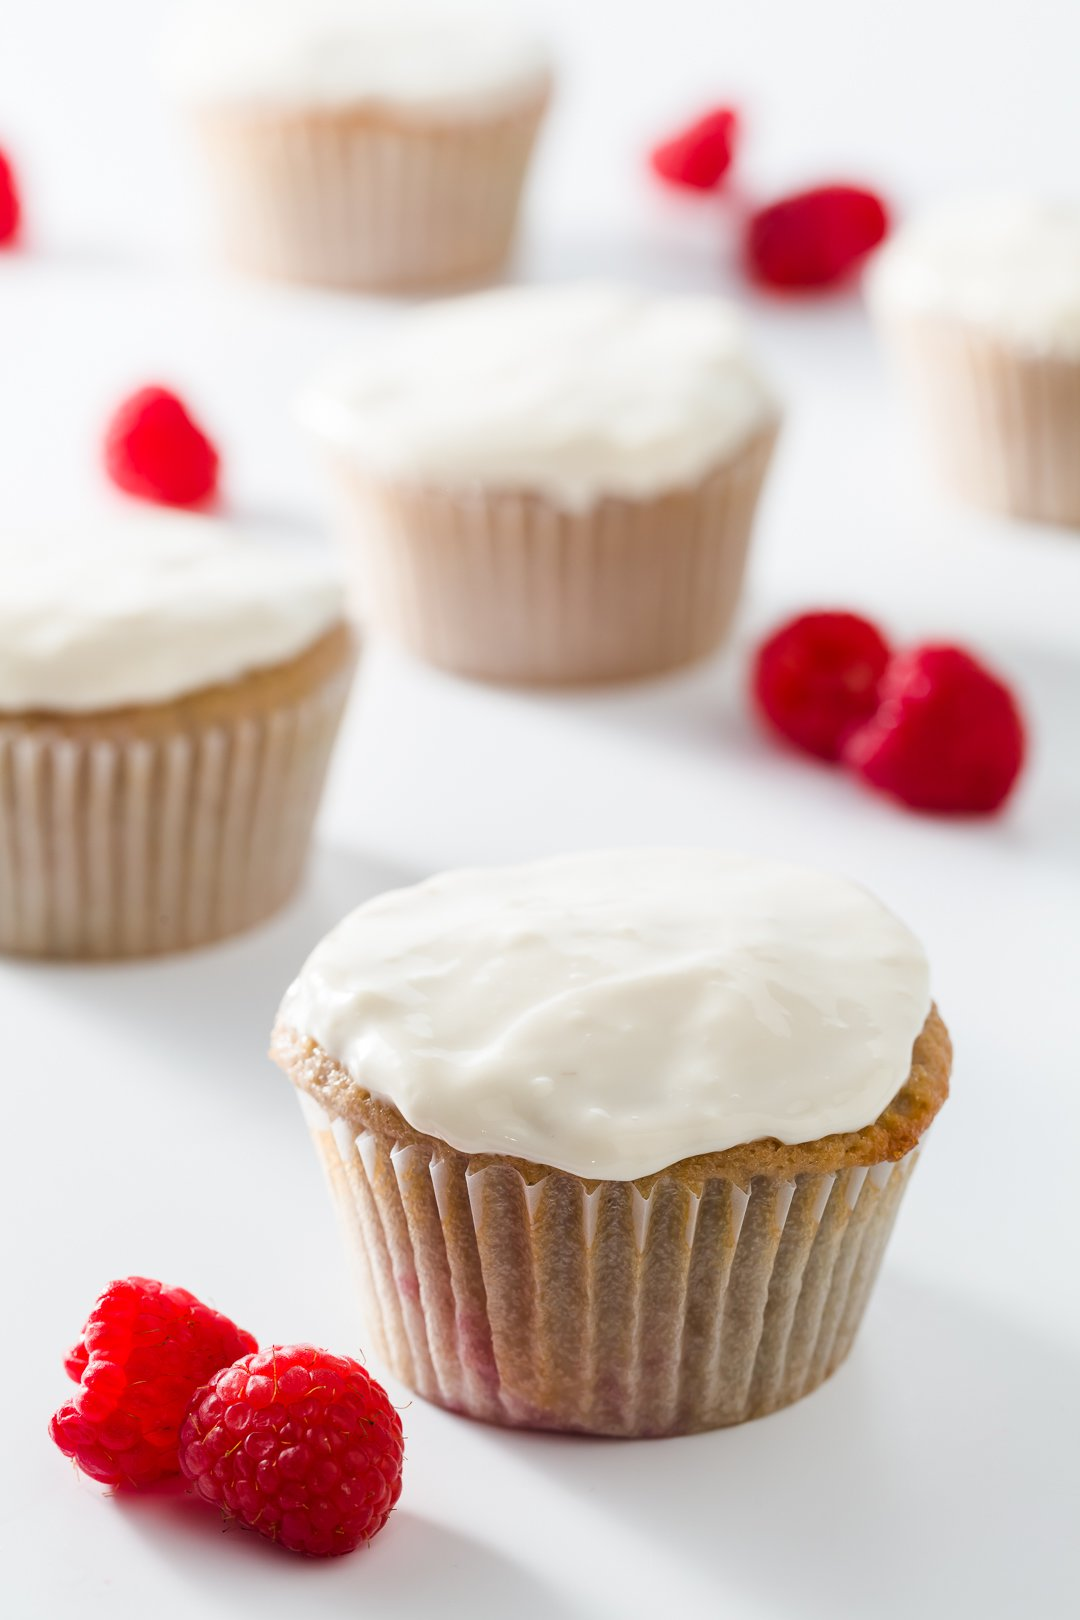 Cupcakes frosted with Greek yogurt frosting